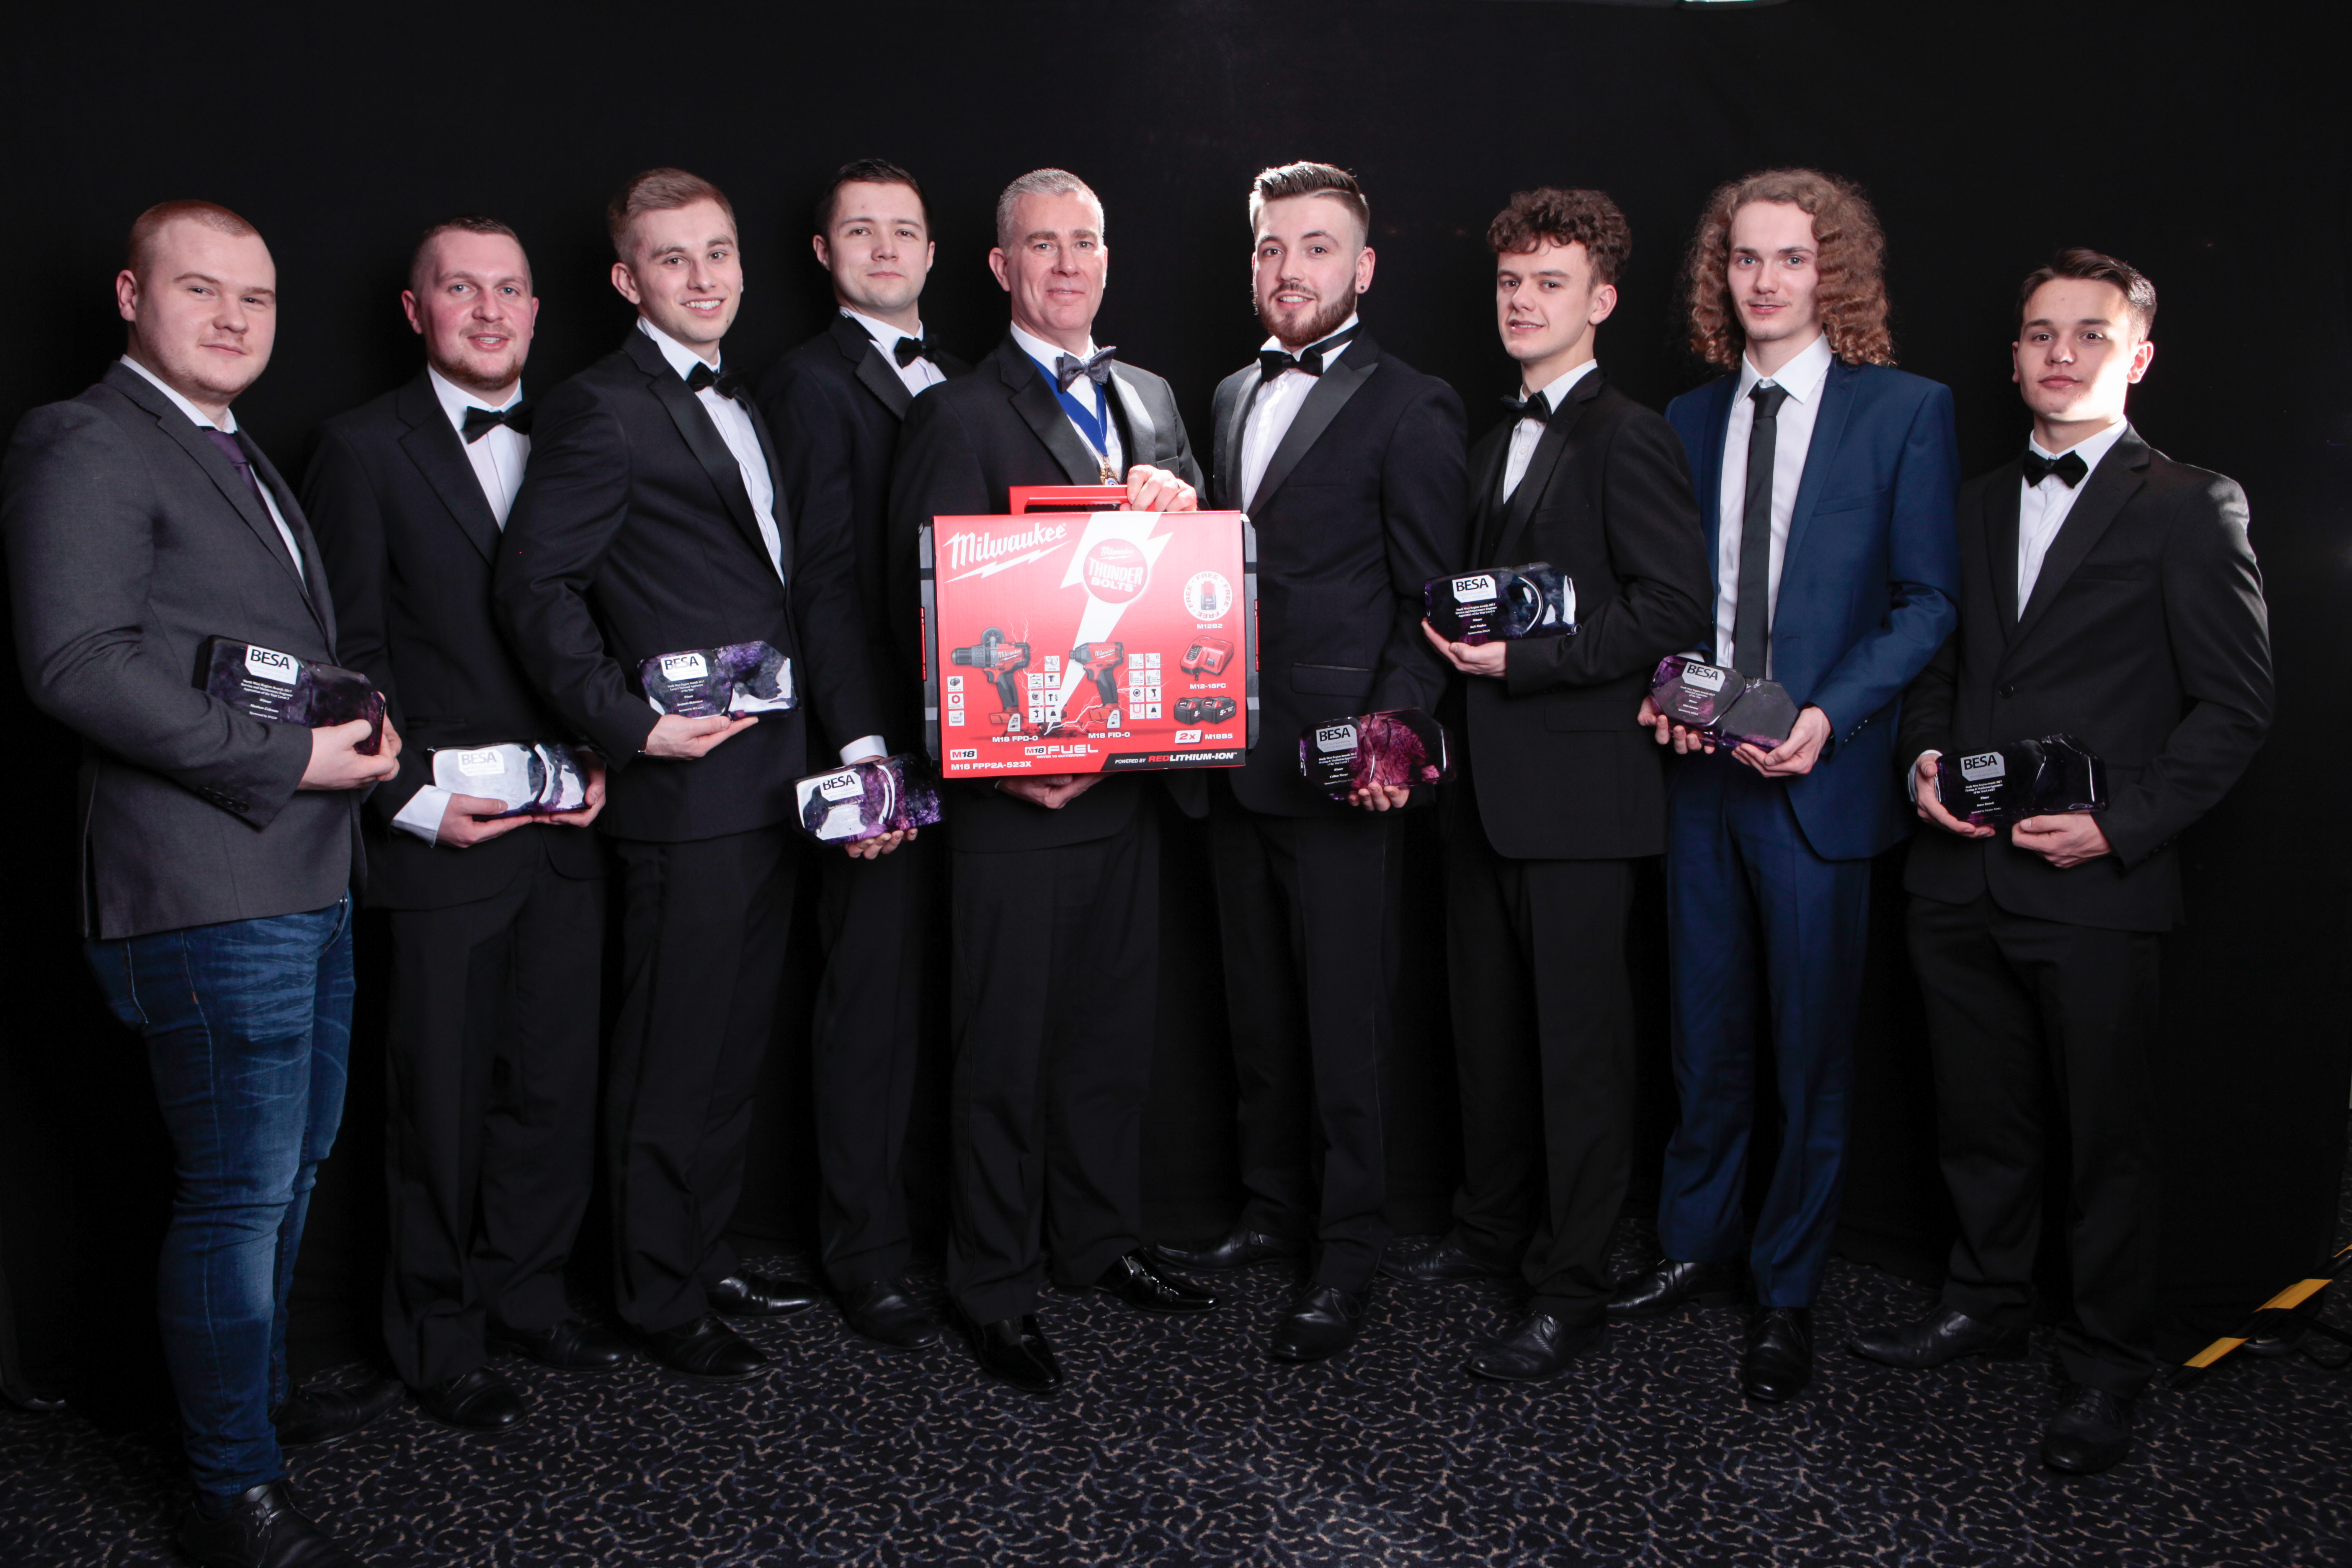 North West Awards winners